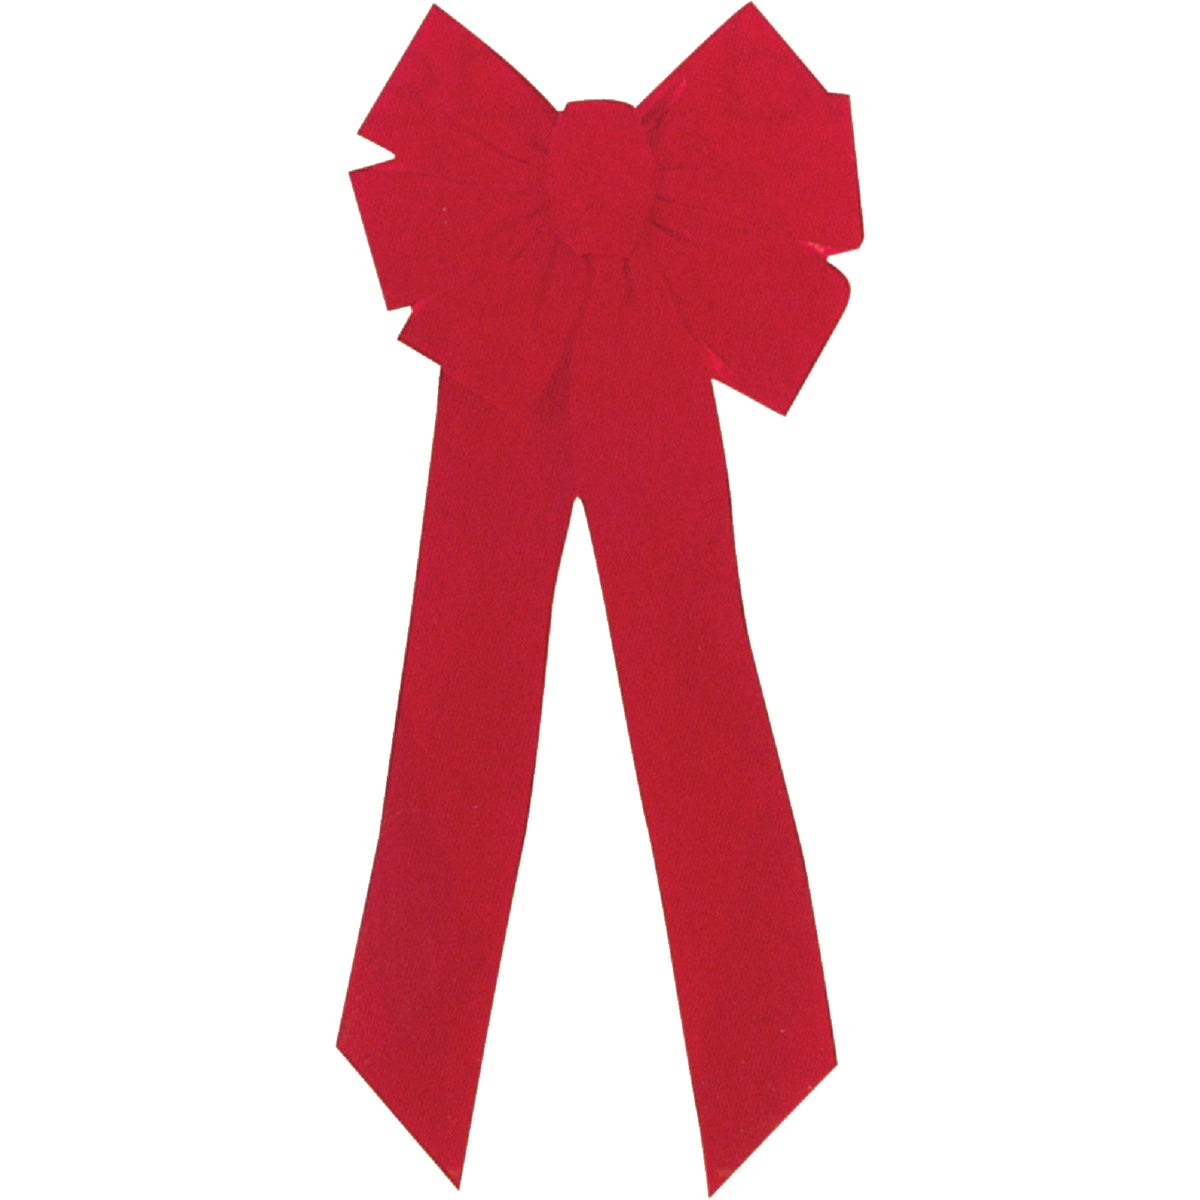 10X21 7-LOOP RED BOW